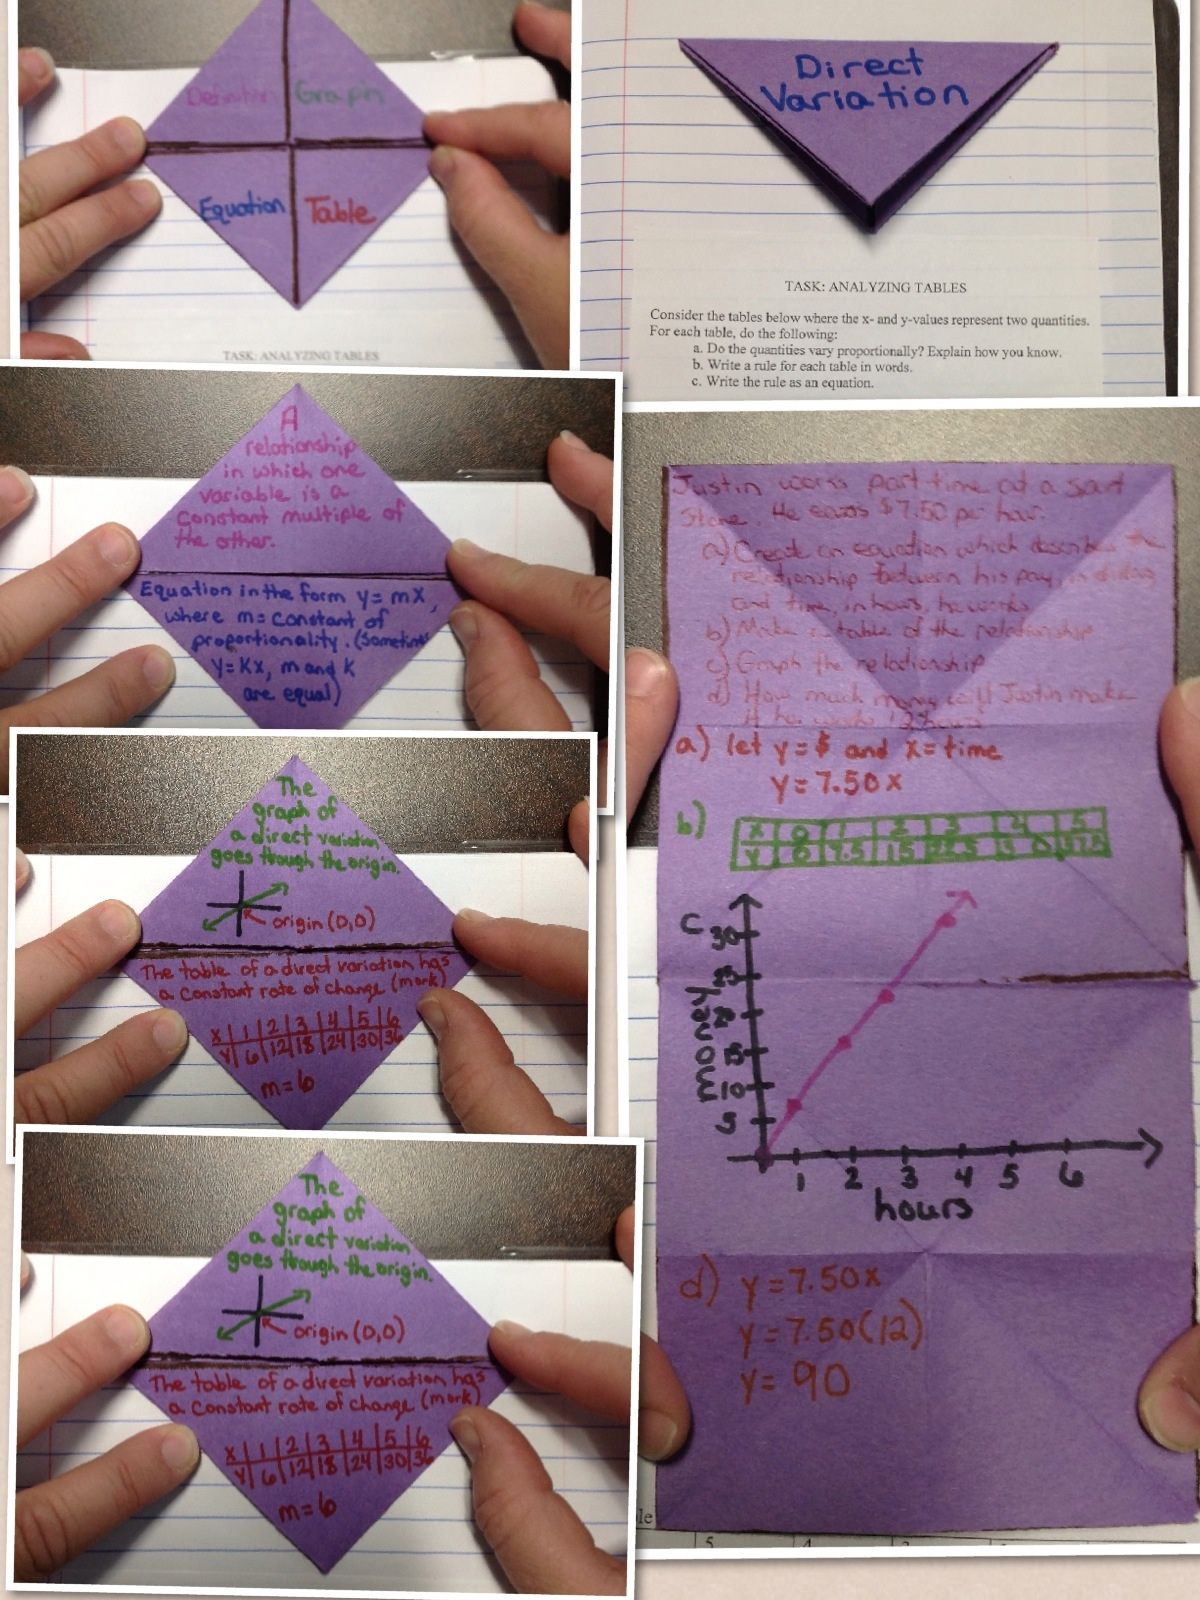 Direct Variation Foldable Page 71